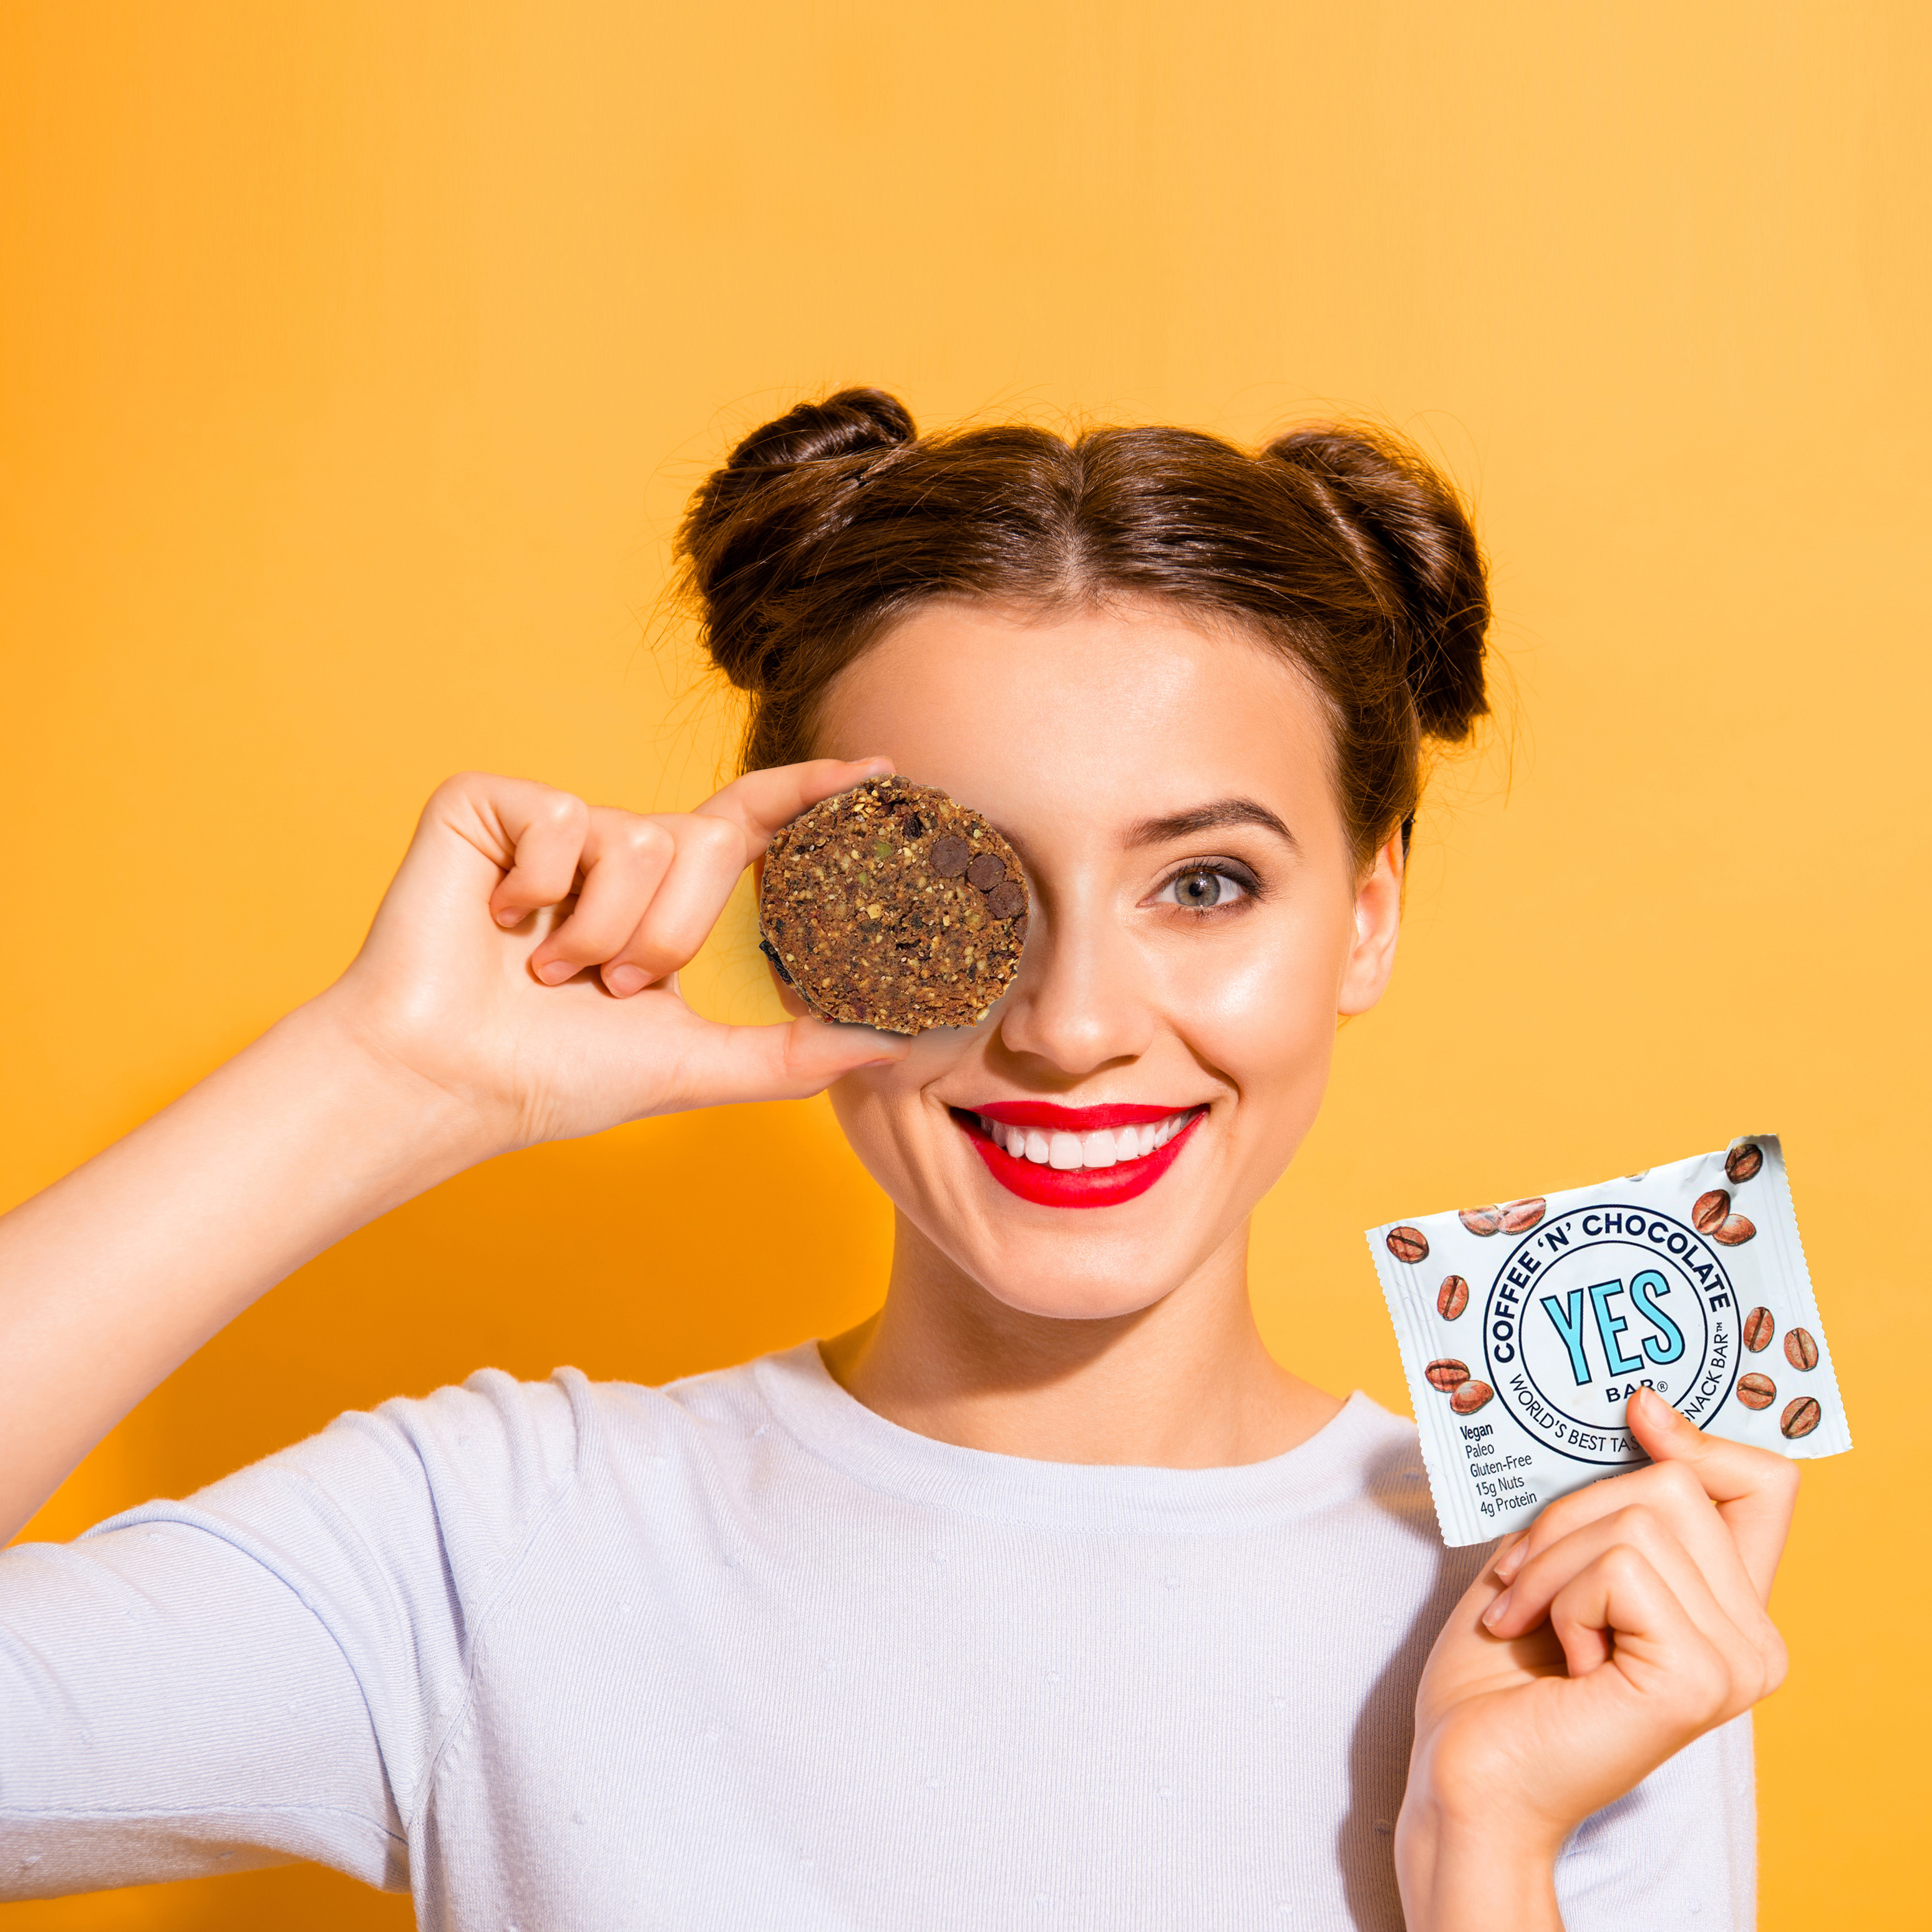 image of a woman holding a granola bar